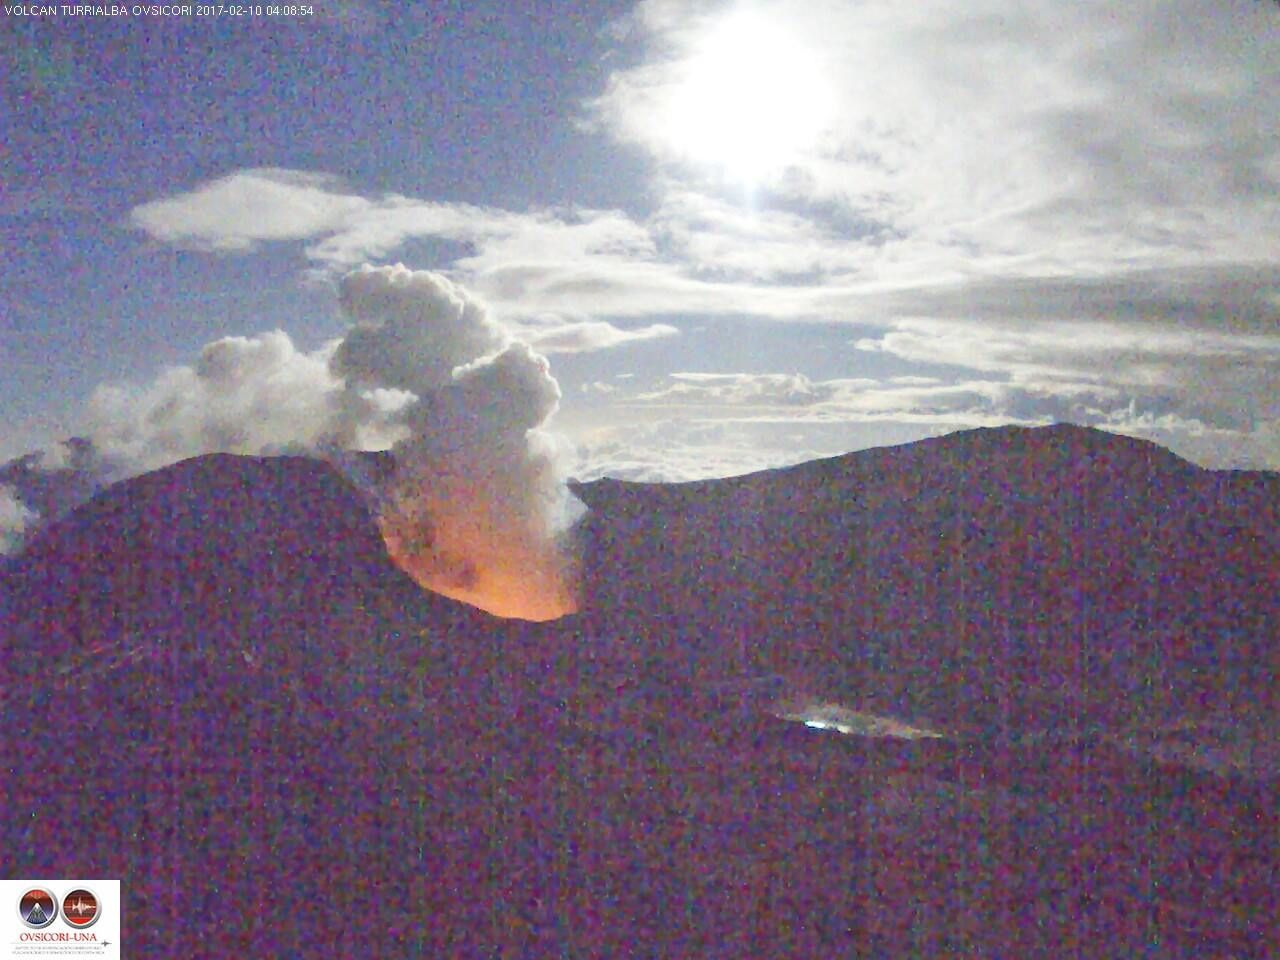 Turrialba - 10.02.2017 / 4h08 - incandescence in the active crater (visible spectrum) - photo webcam Ovsicori